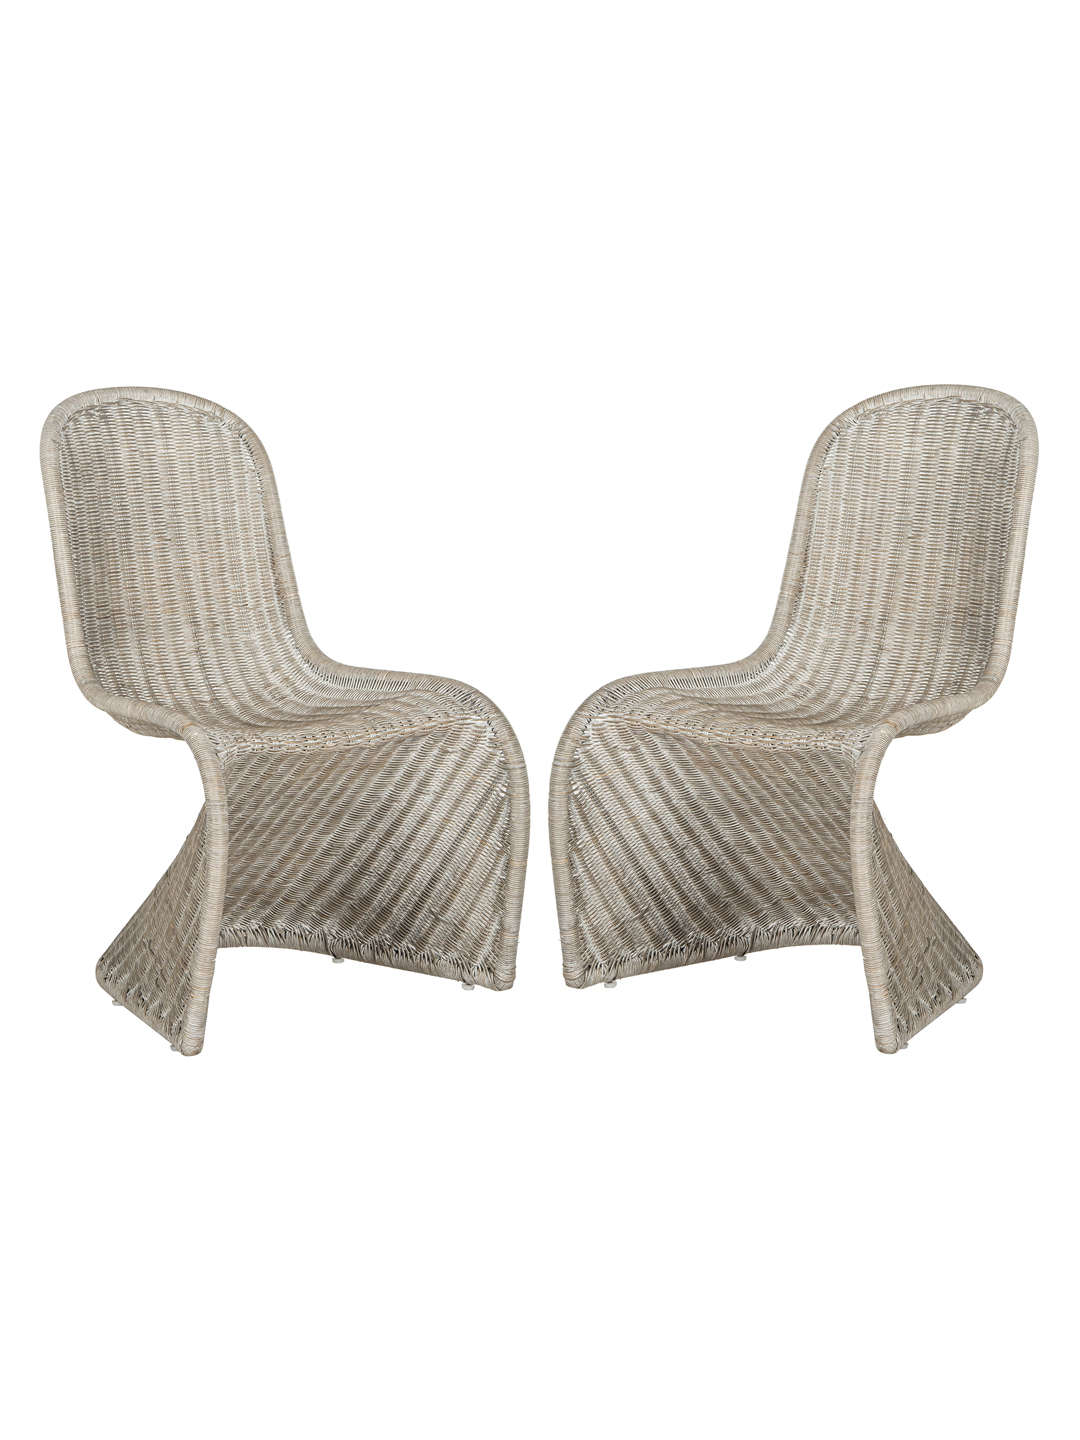 Modern Grey Wicker Chairs (2) $55